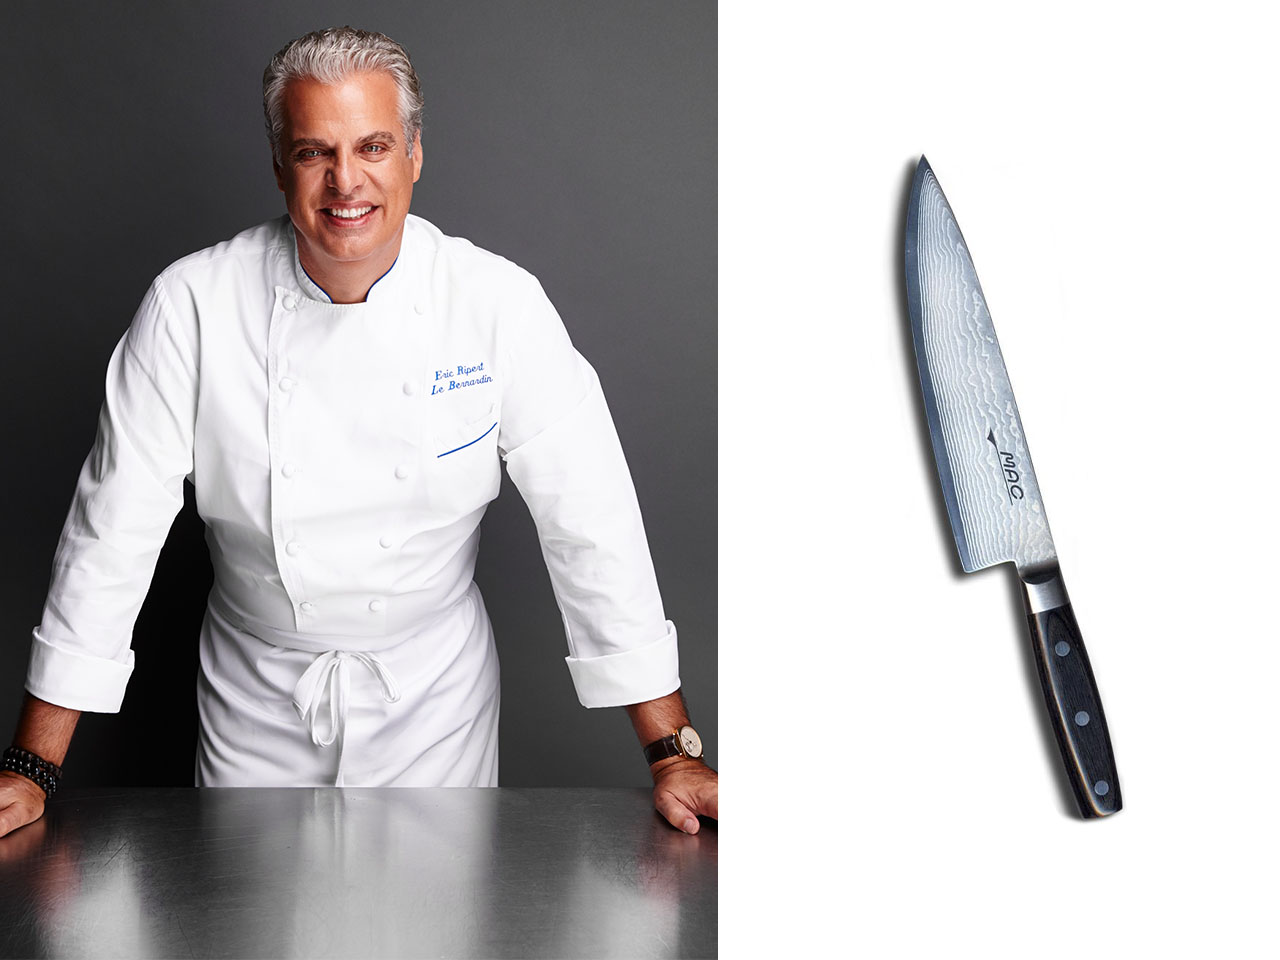 The Best Chefs Knives According To 10 Of The Best Chefs In America